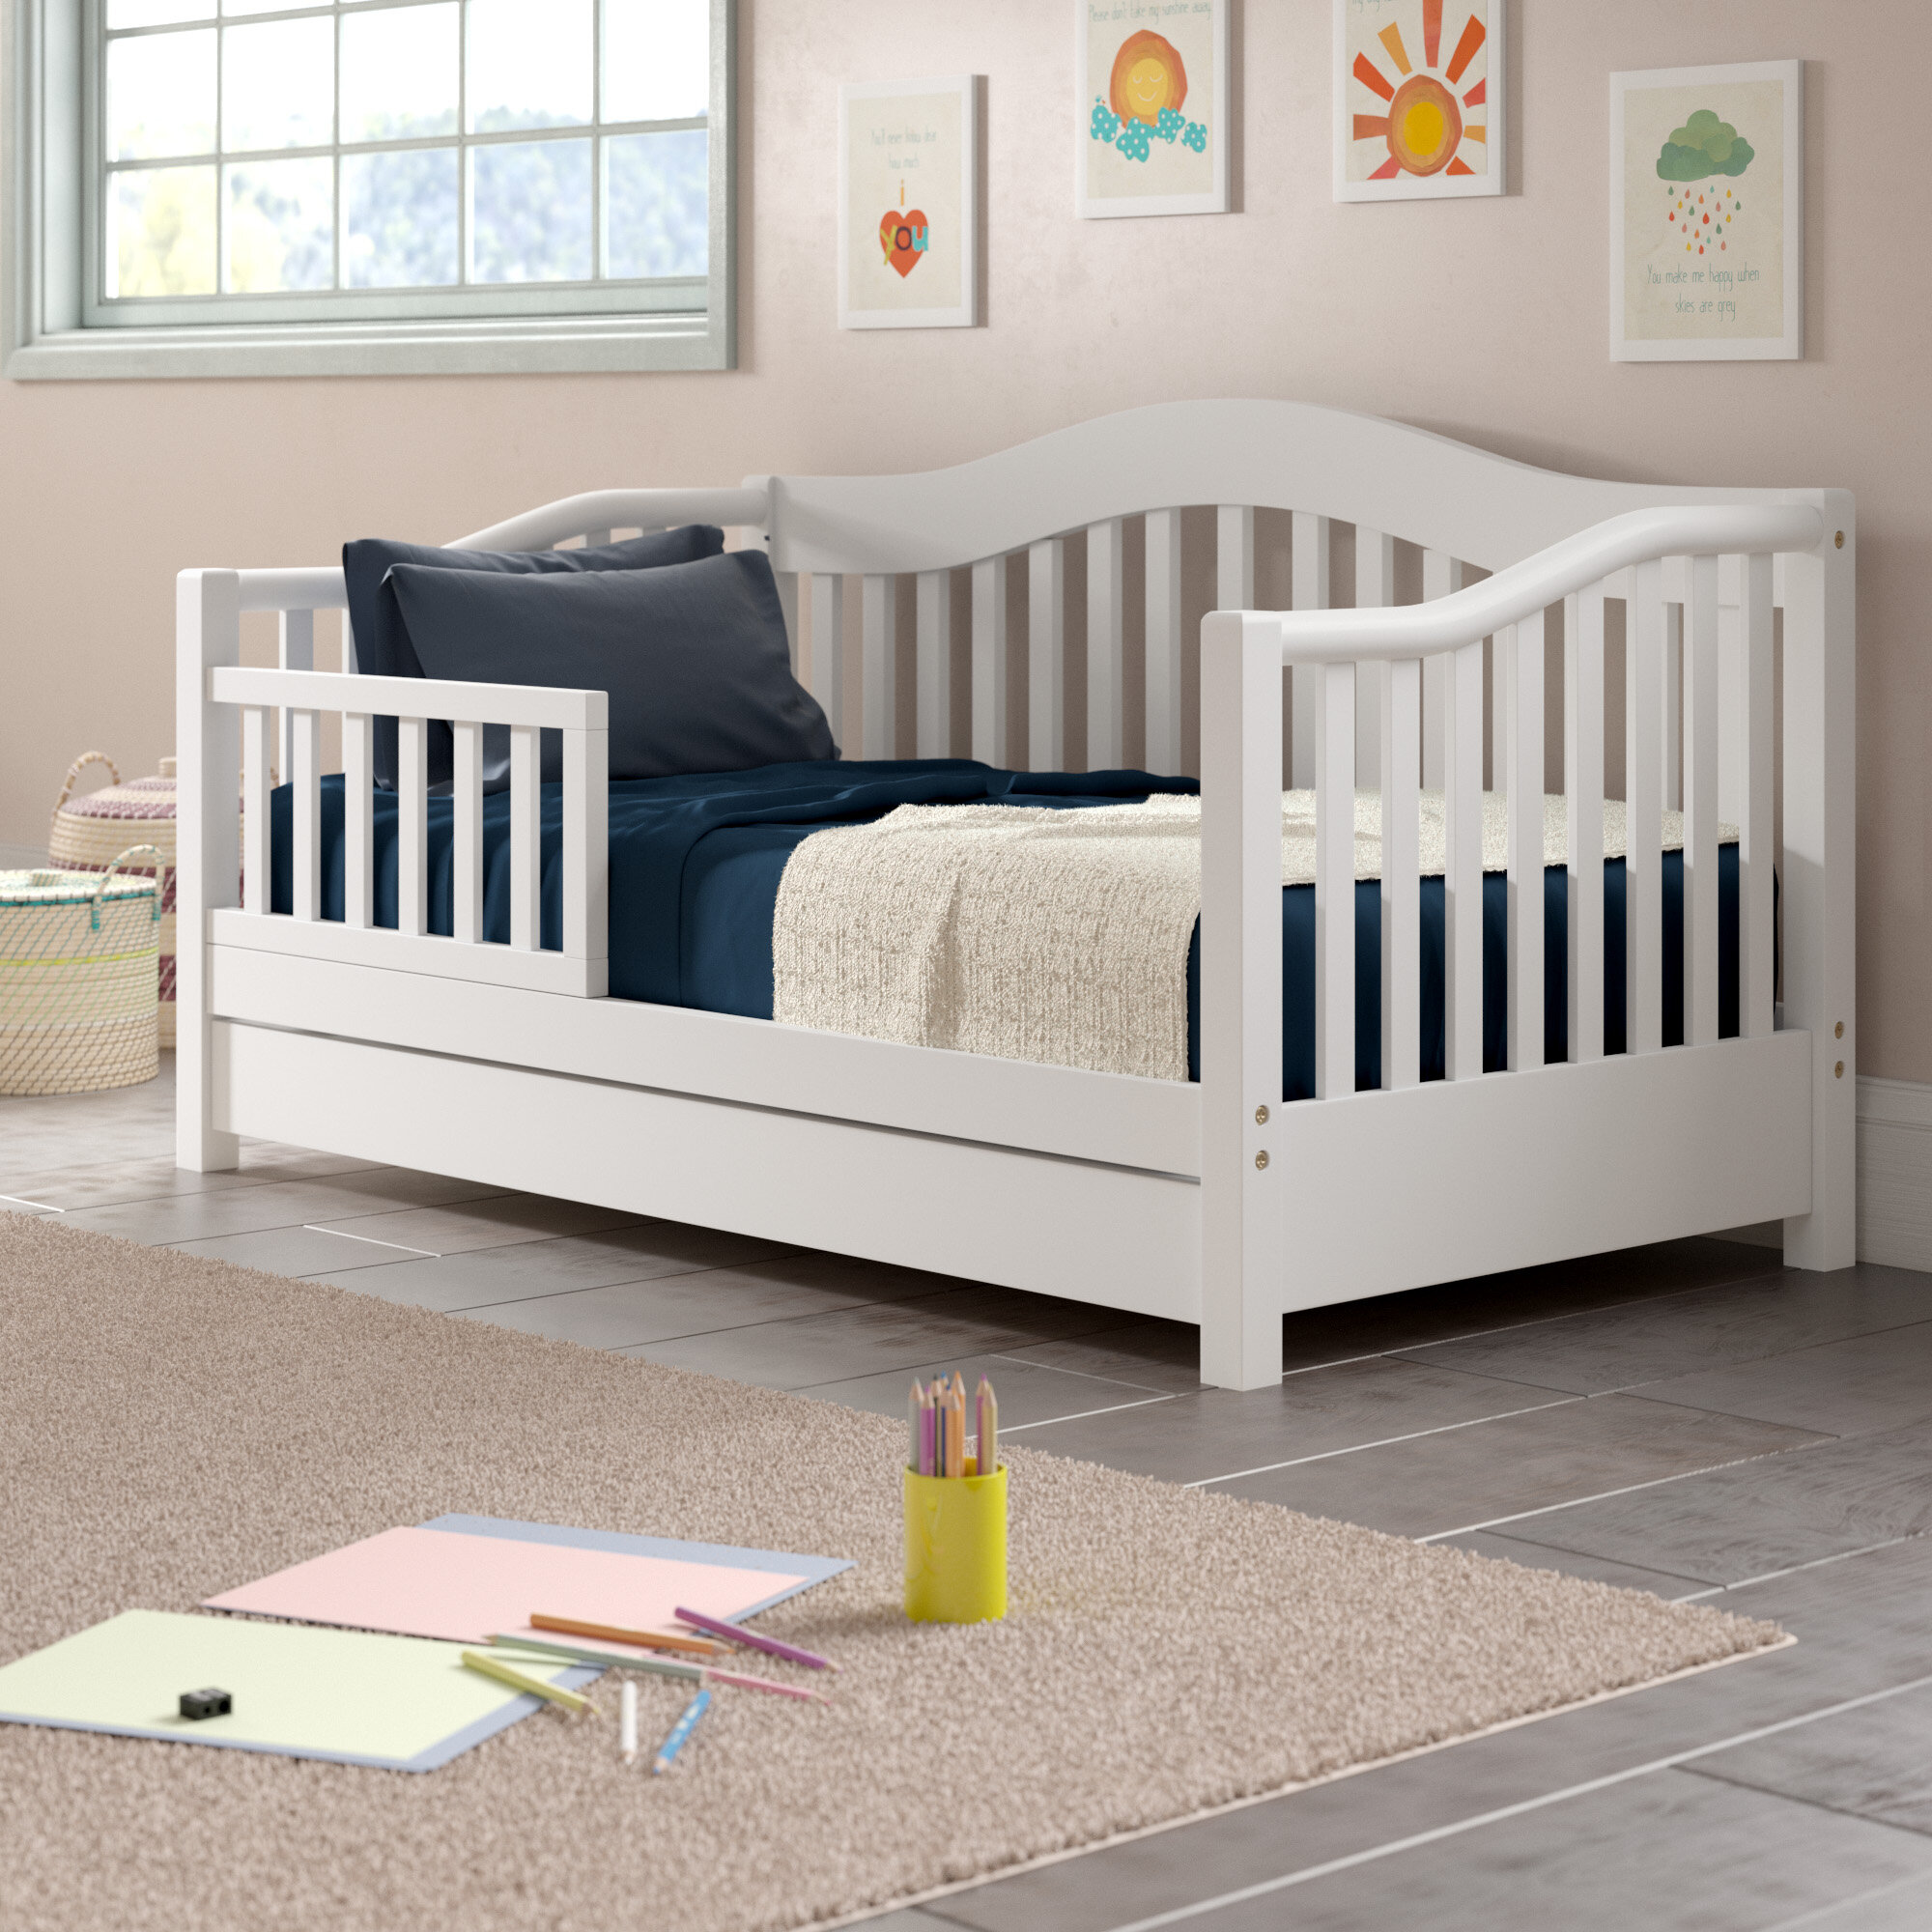 Picture of: Toddler White Kids Beds You Ll Love In 2020 Wayfair